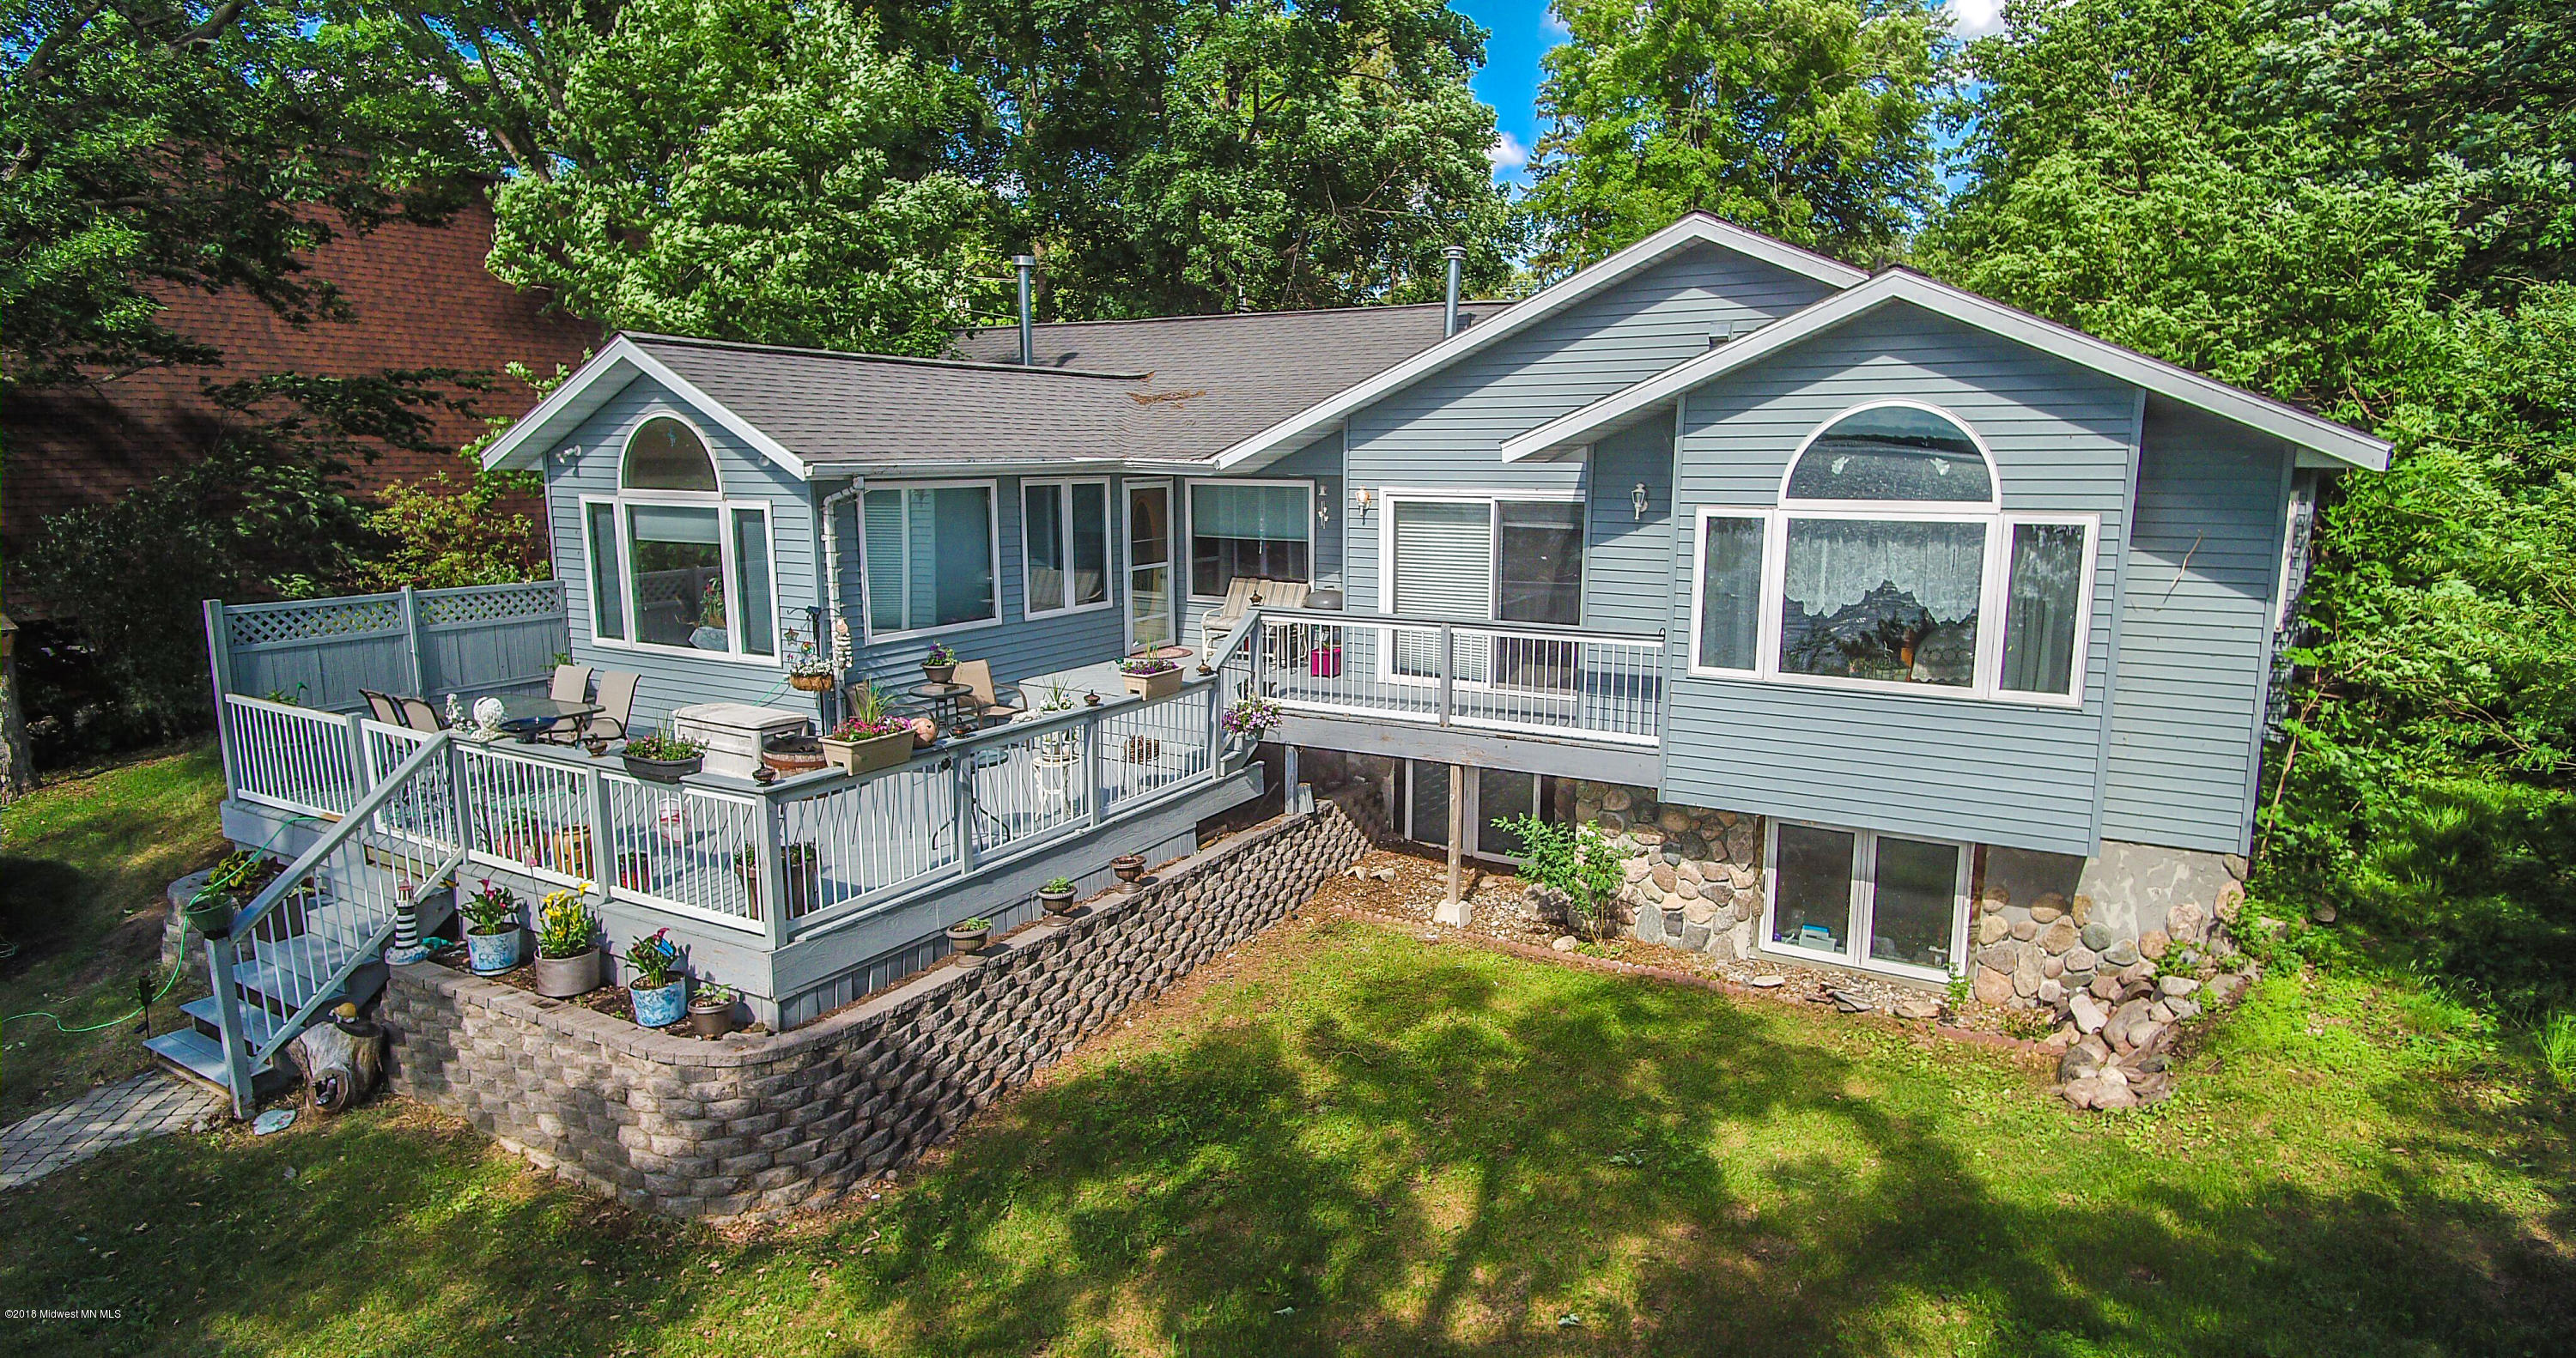 pelican rapids muslim singles Page 5 | single family homes for sale in pelican rapids, mn last 42 days on market find your dream home at realtorcom® before it's gone.